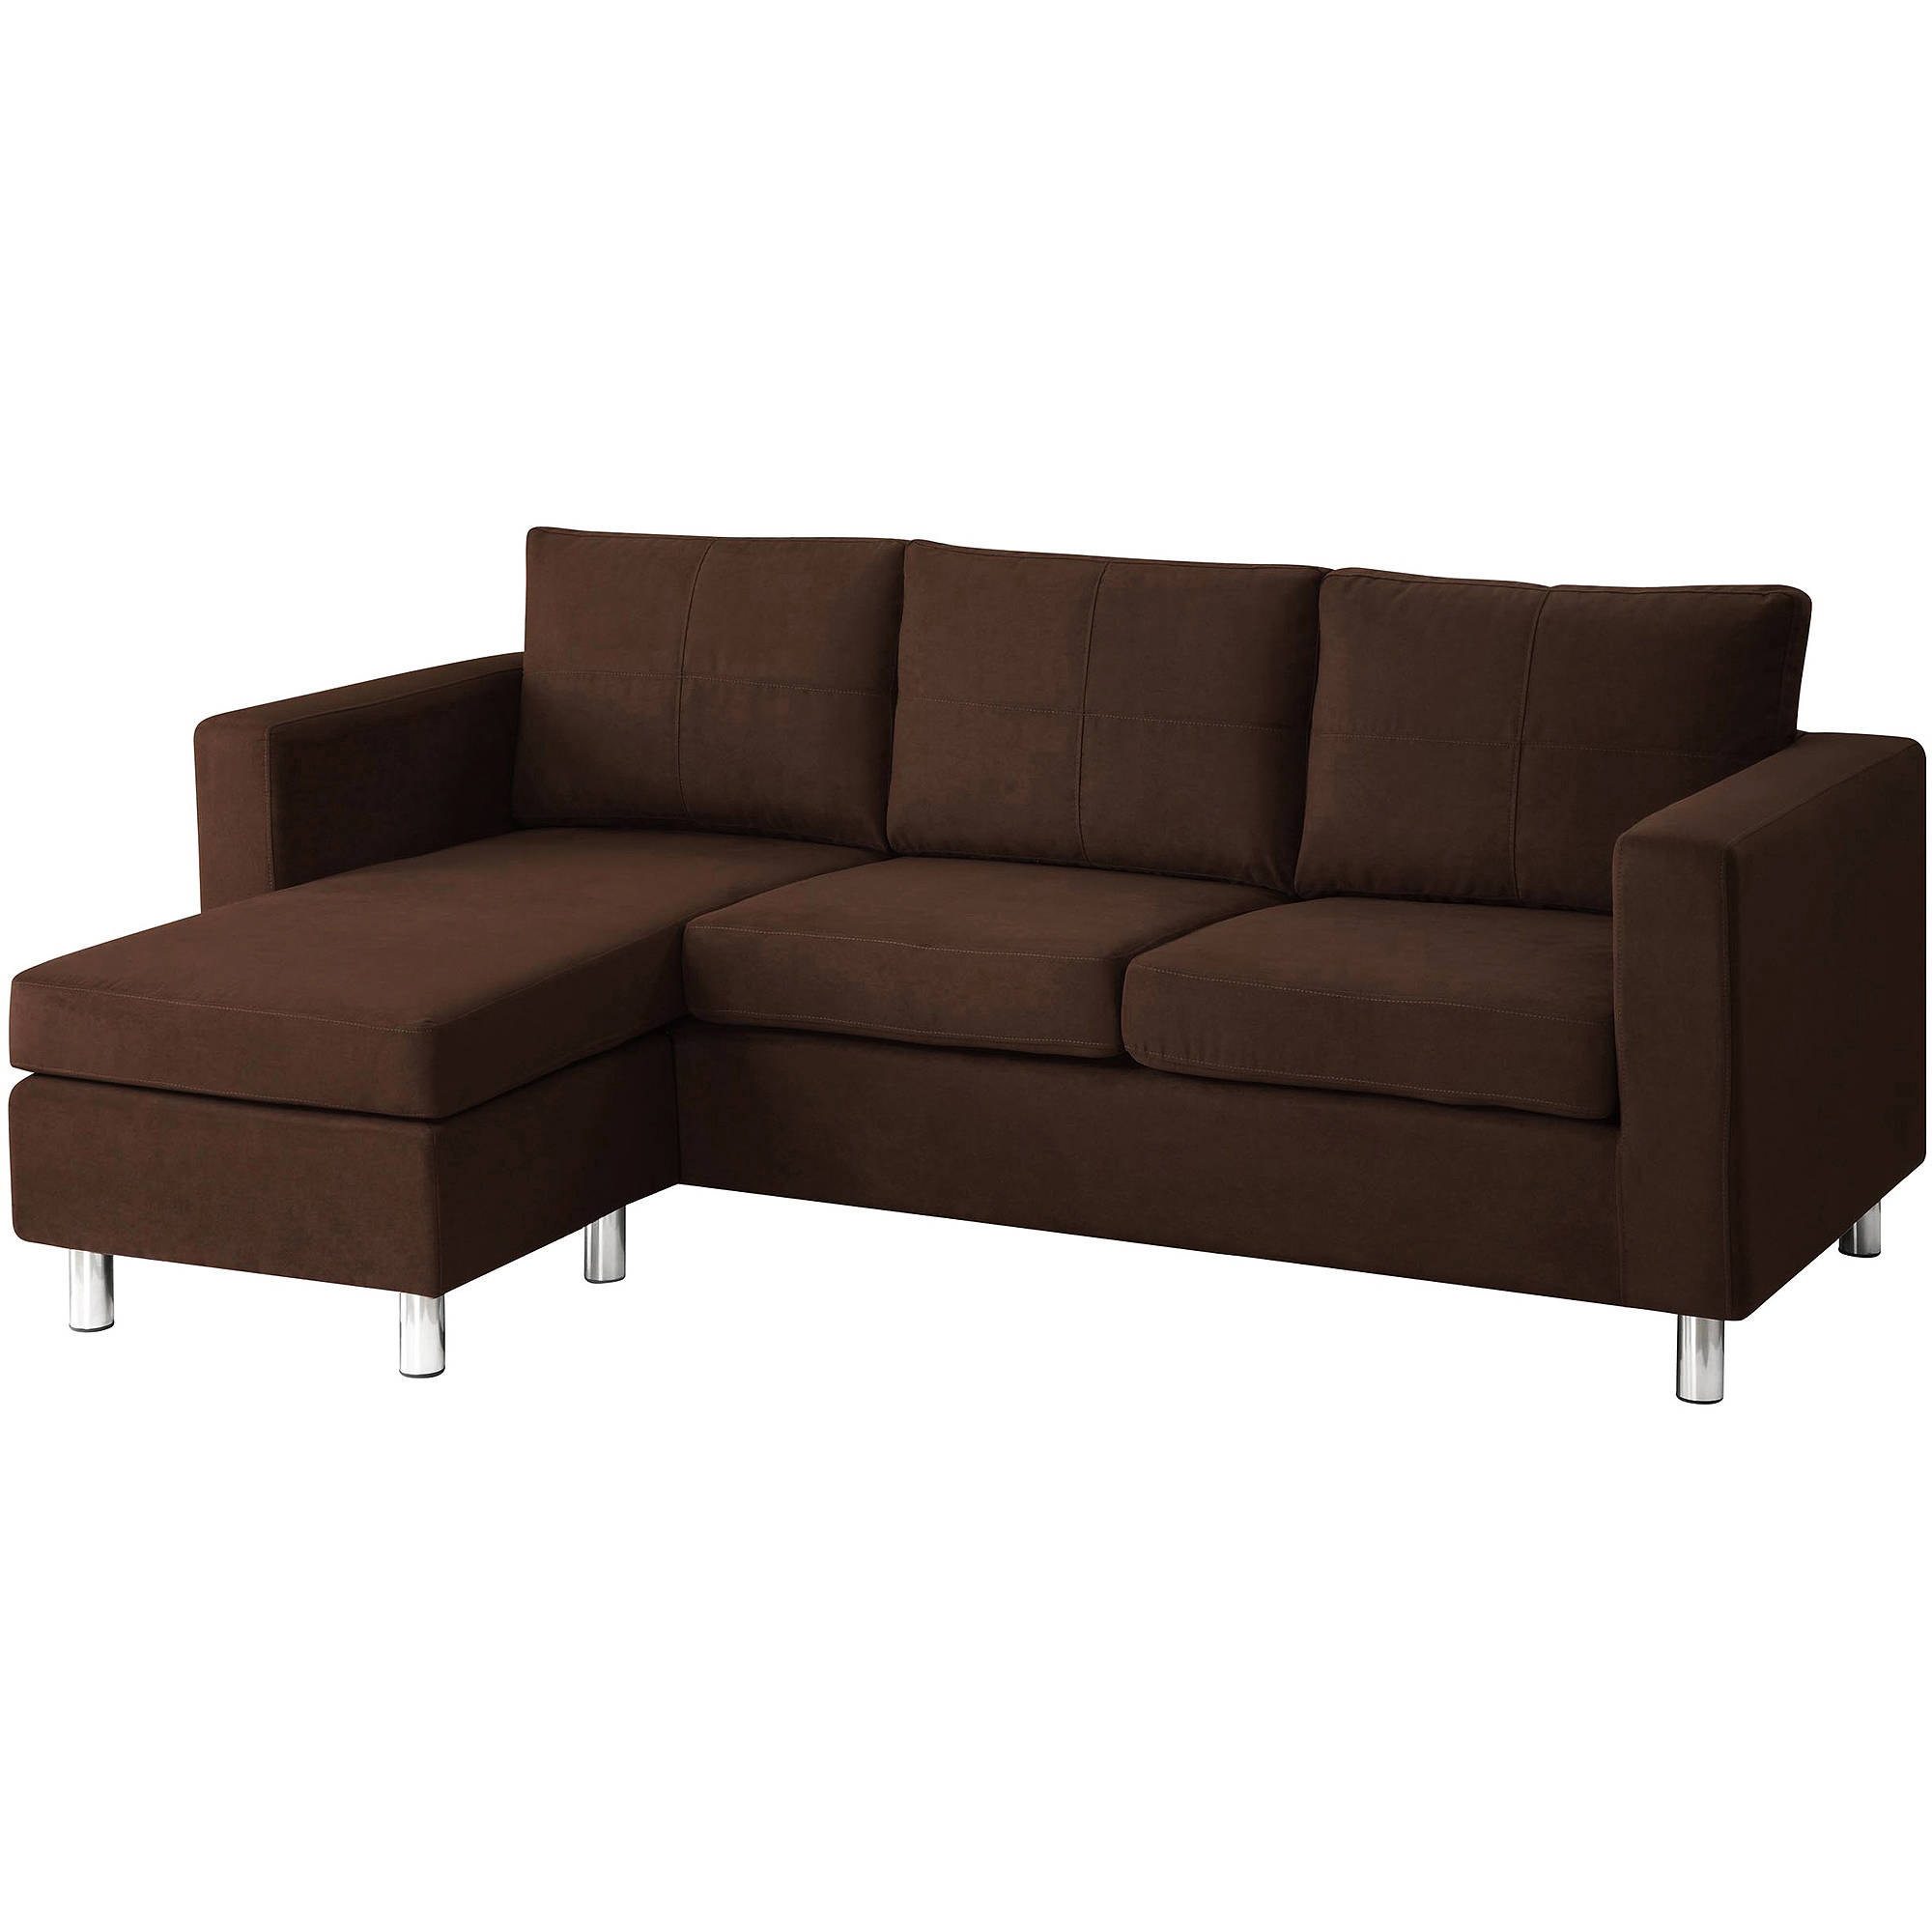 Dorel Home Small Spaces Configurable Sectional Sofa Multiple